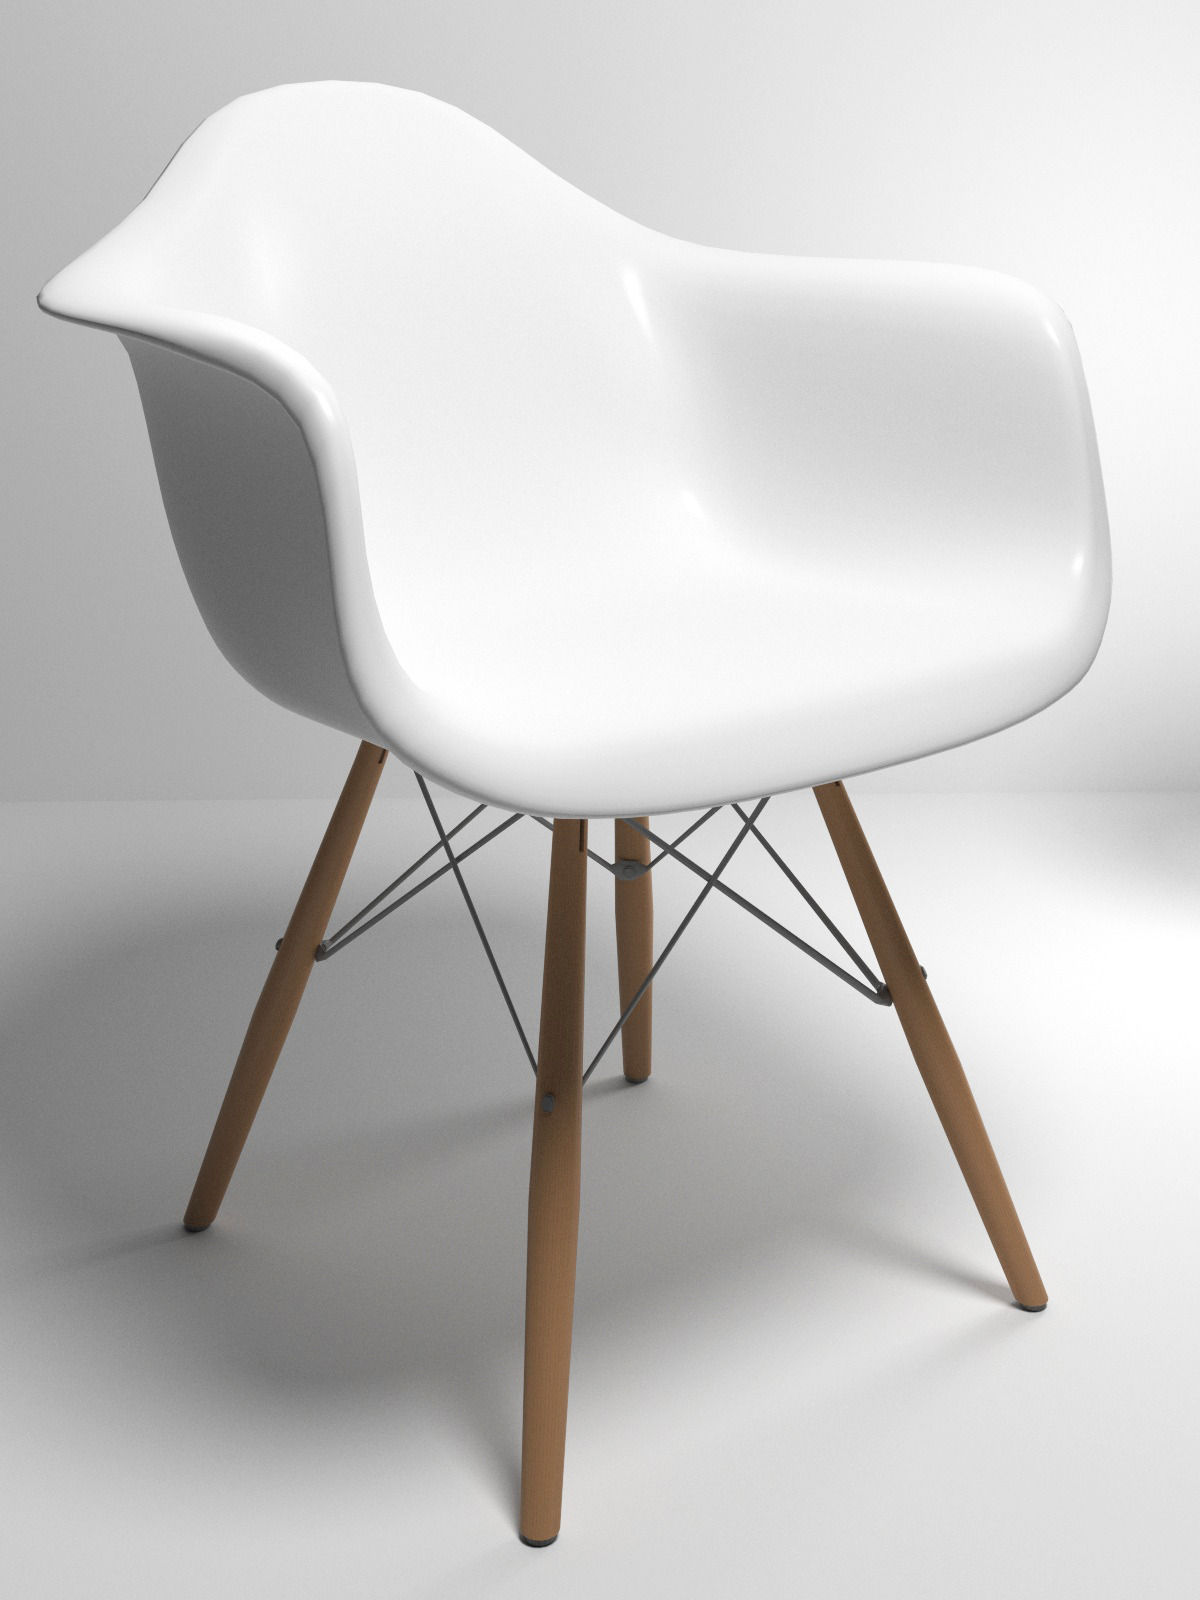 3D Eames style molded plastic chair CGTrader